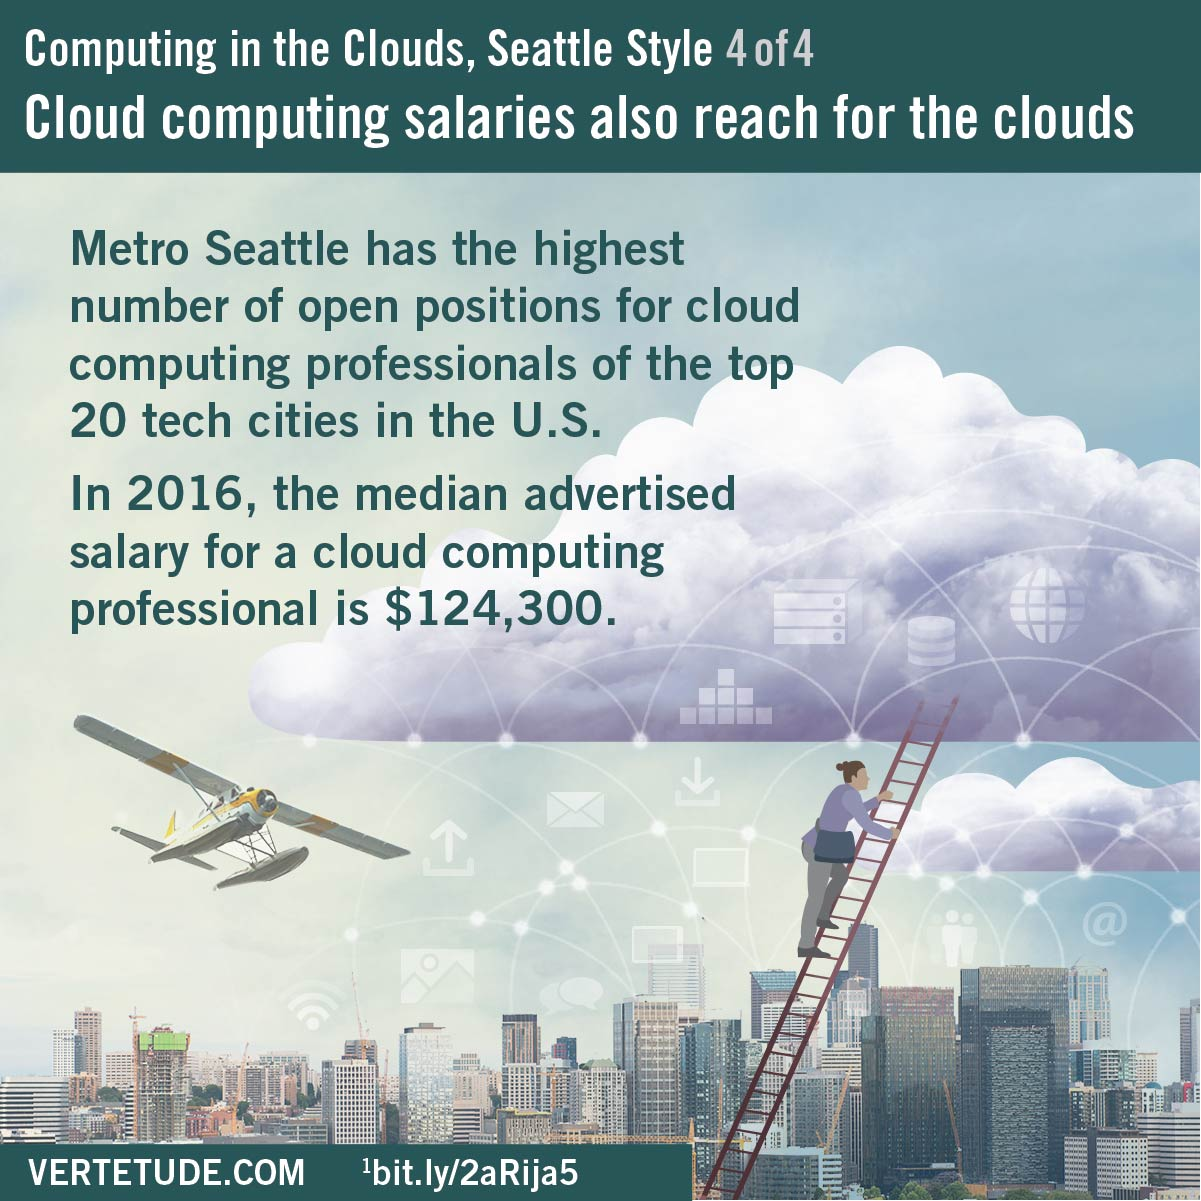 Infographic, cloud computing in Seattle, industry salaries